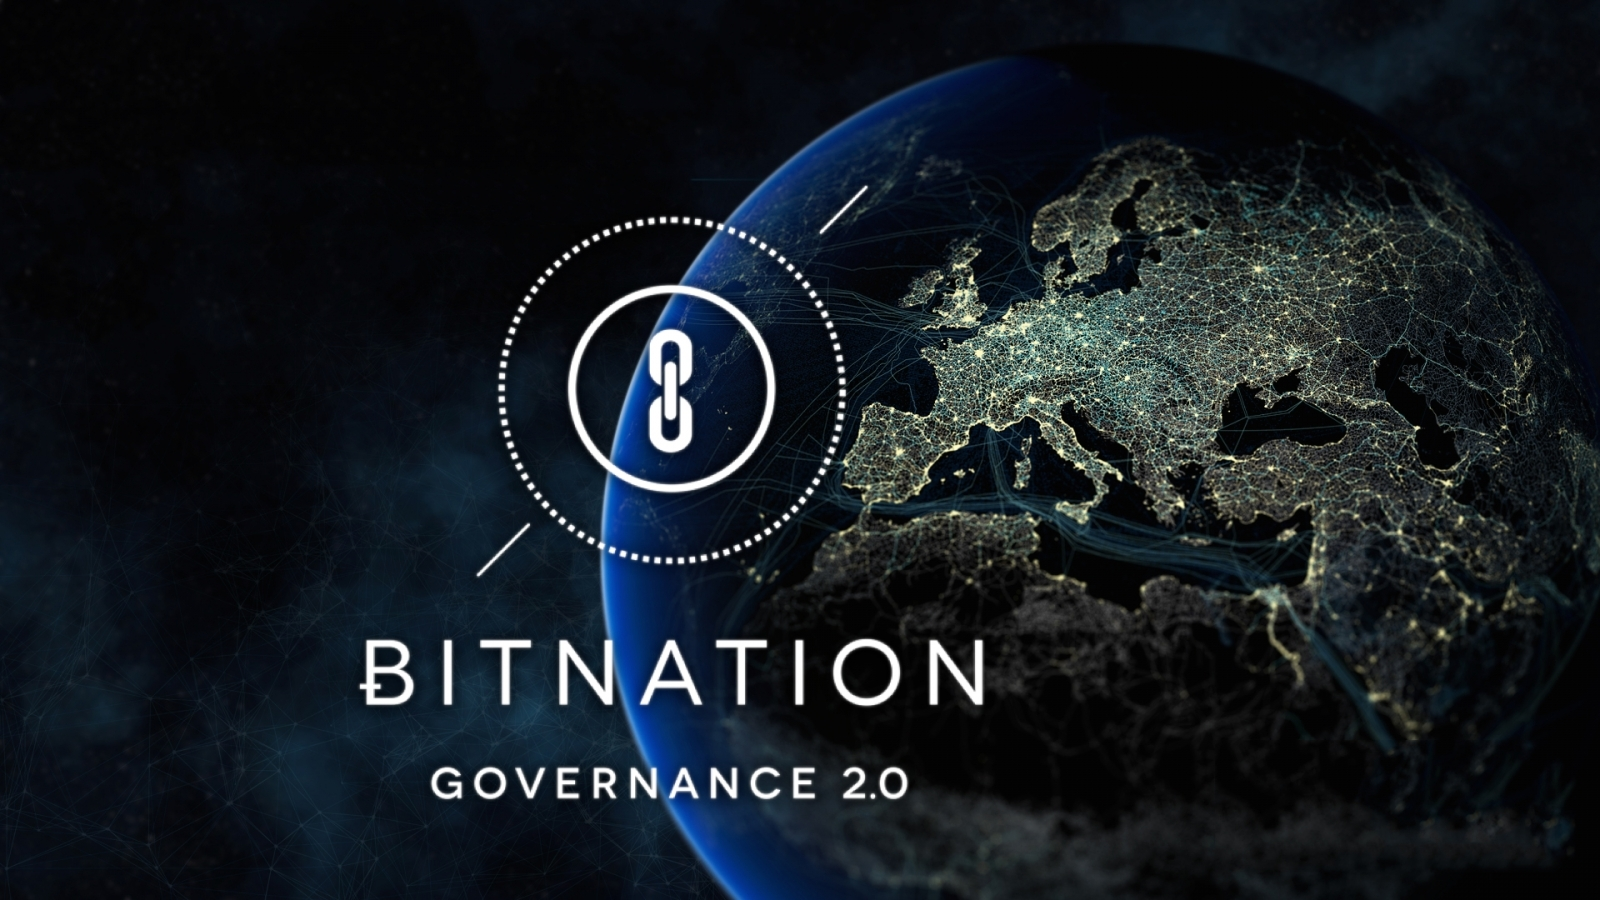 Bitnation launches Pangea jurisdiction for creating nations on the blockchain